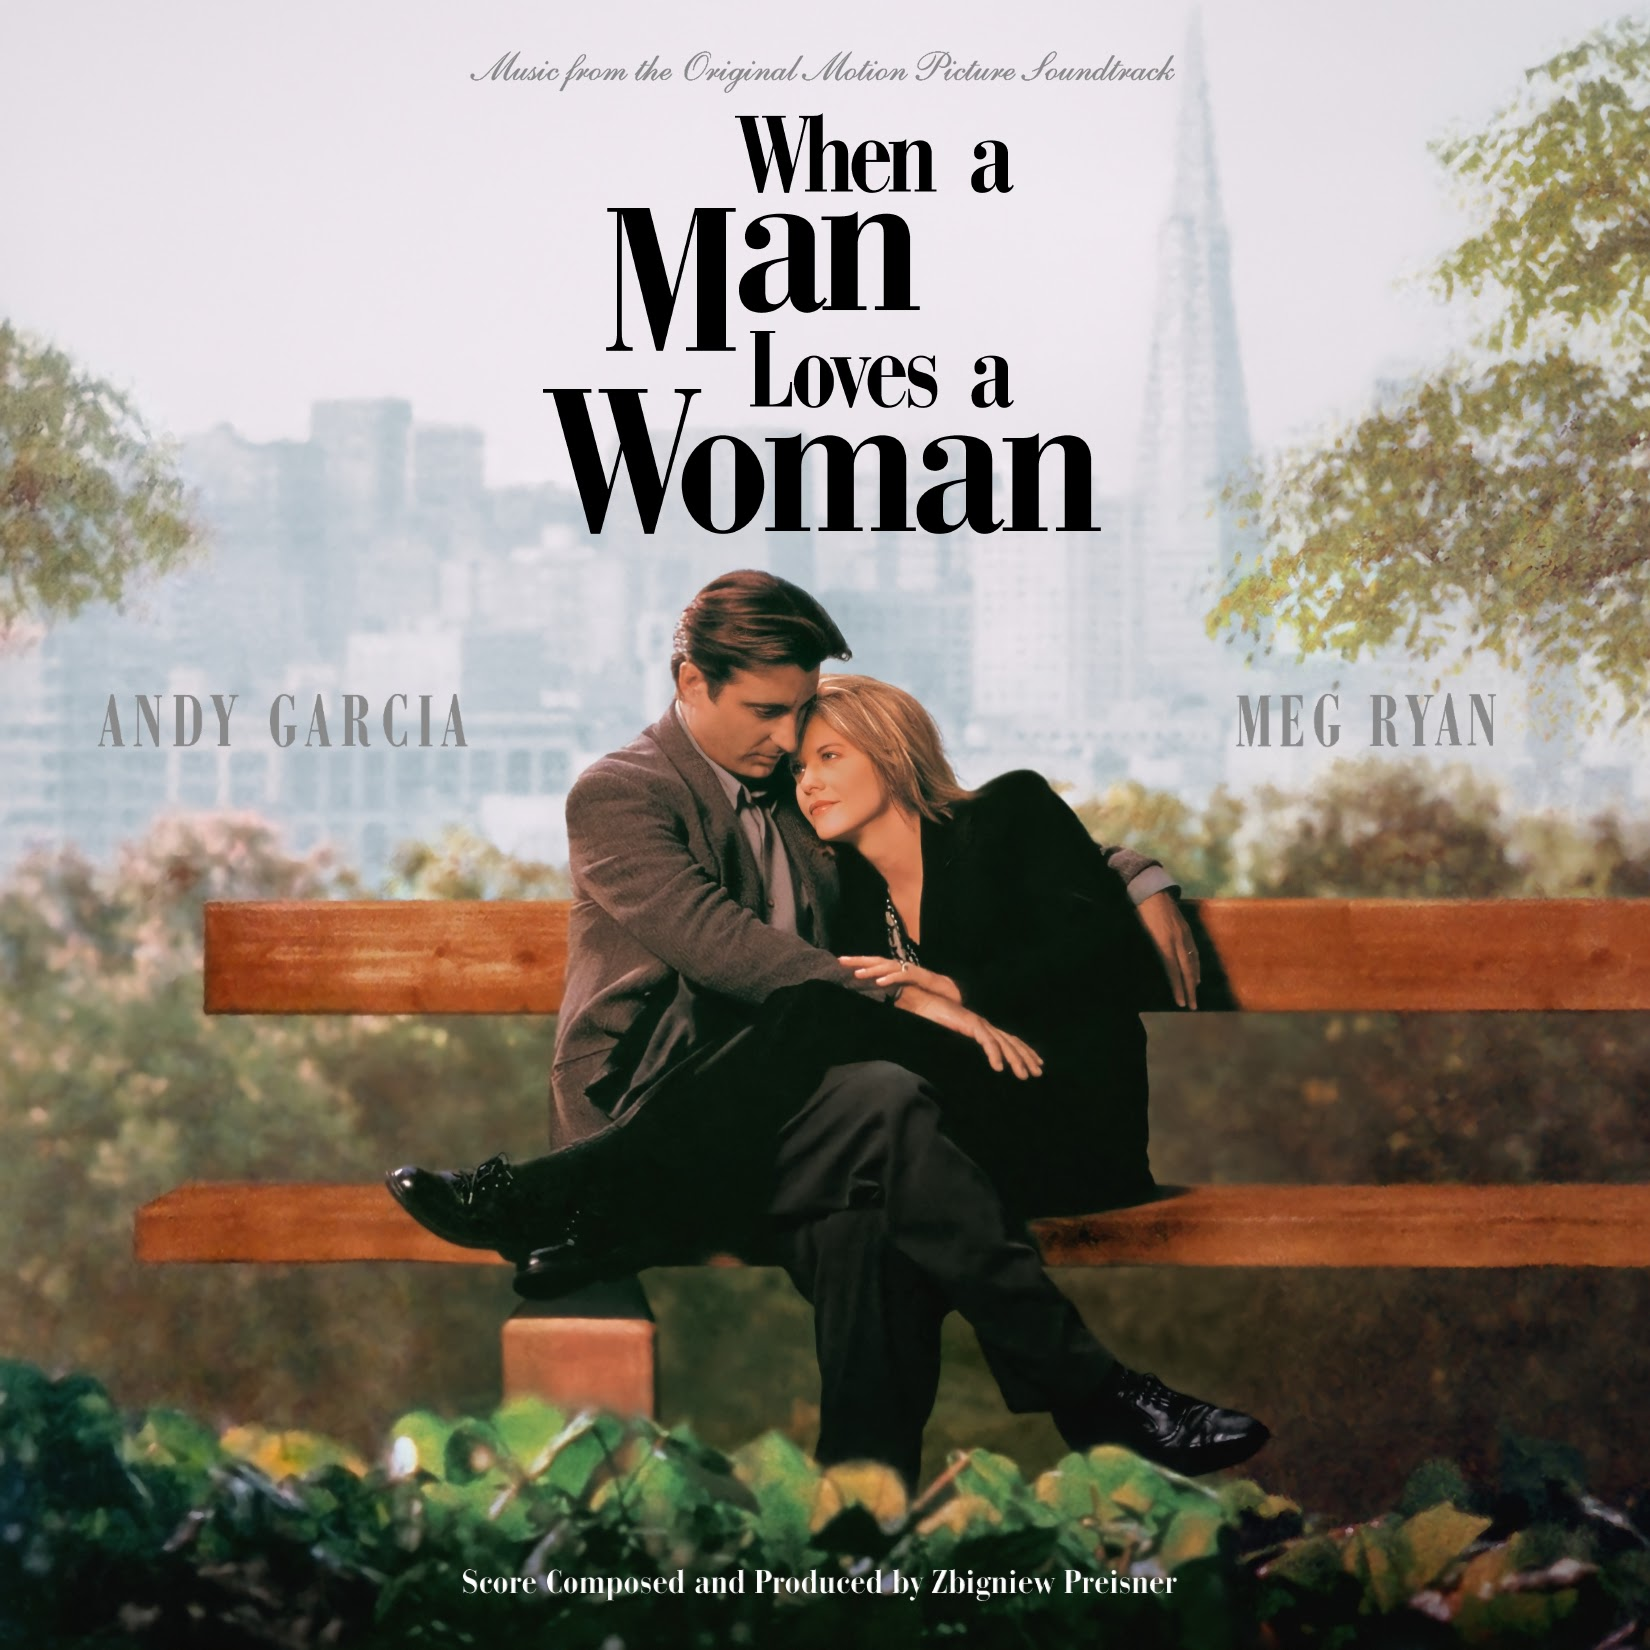 Album Artist: Zbigniew Preisner / Album Title: When a Man Loves a Woman (Music from the Original Motion Picture Soundtrack)